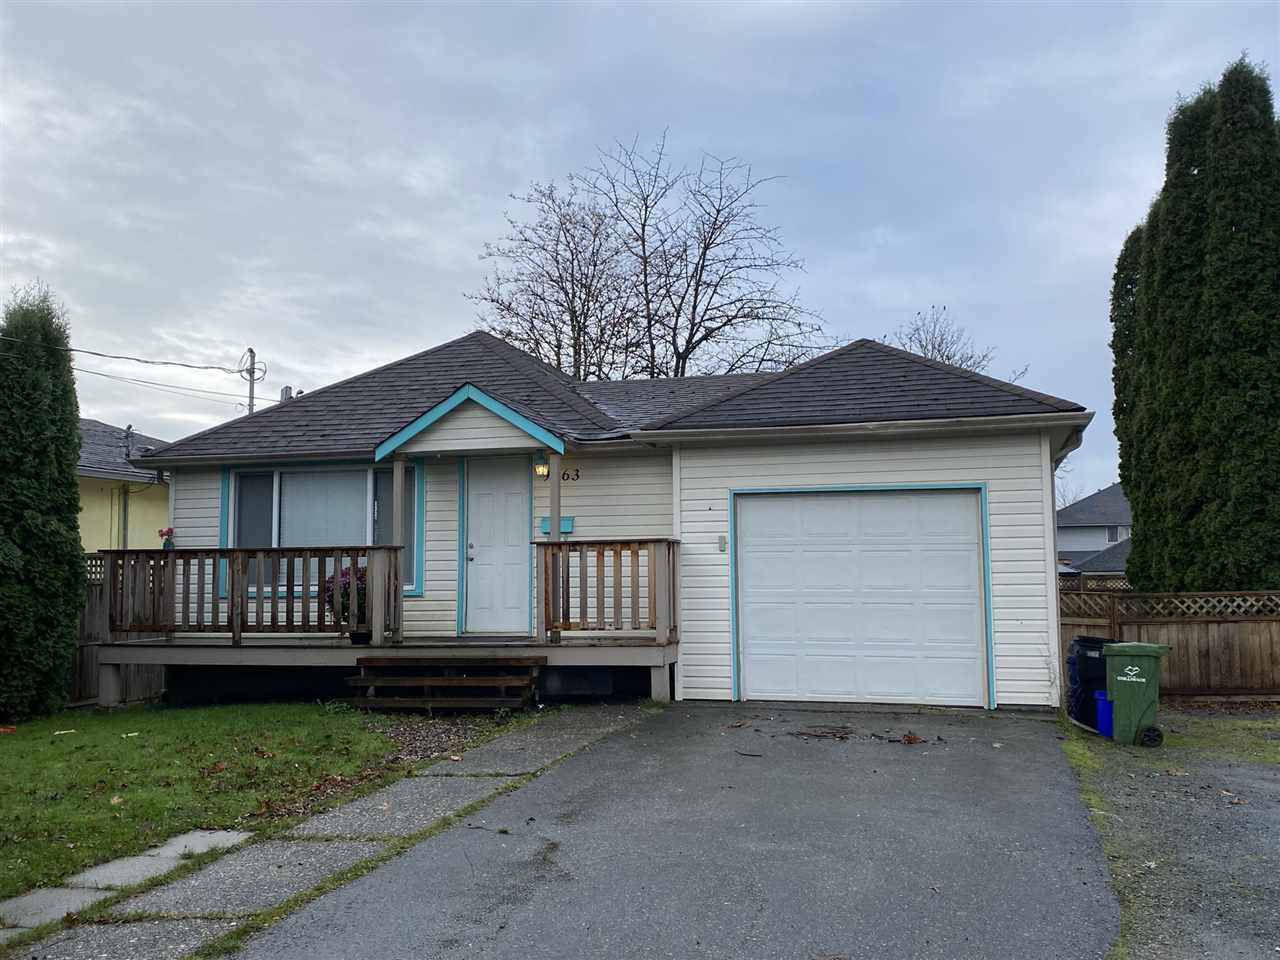 Main Photo: 9363 WOODBINE Street in Chilliwack: Chilliwack E Young-Yale House for sale : MLS®# R2519231